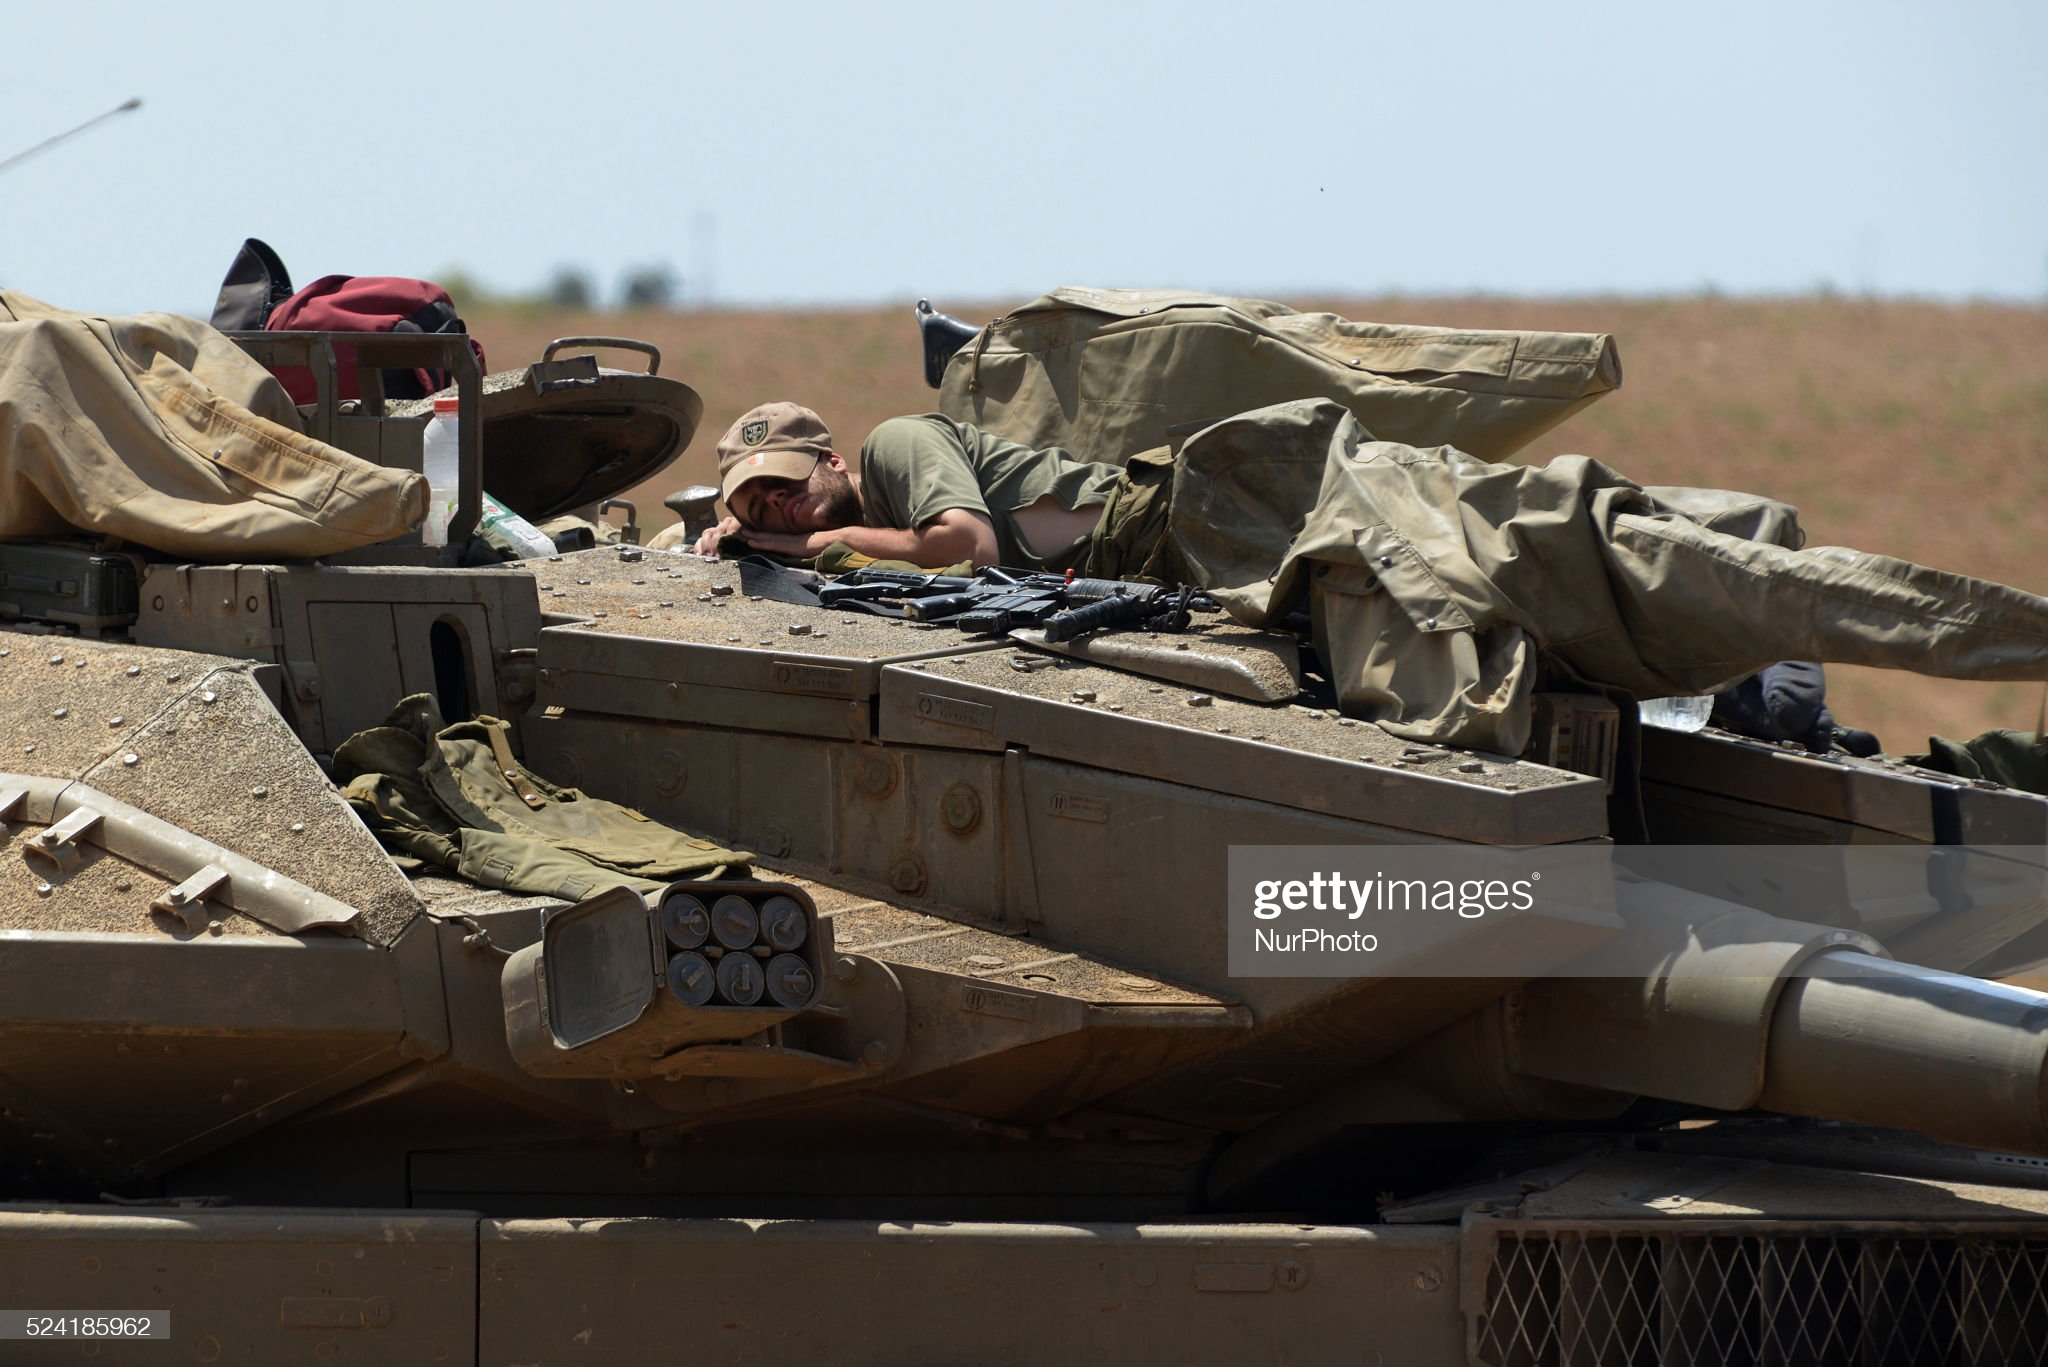 https://media.gettyimages.com/photos/an-israeli-soldier-sleeps-atop-a-tank-in-an-army-deployment-area-near-picture-id524185962?s=2048x2048